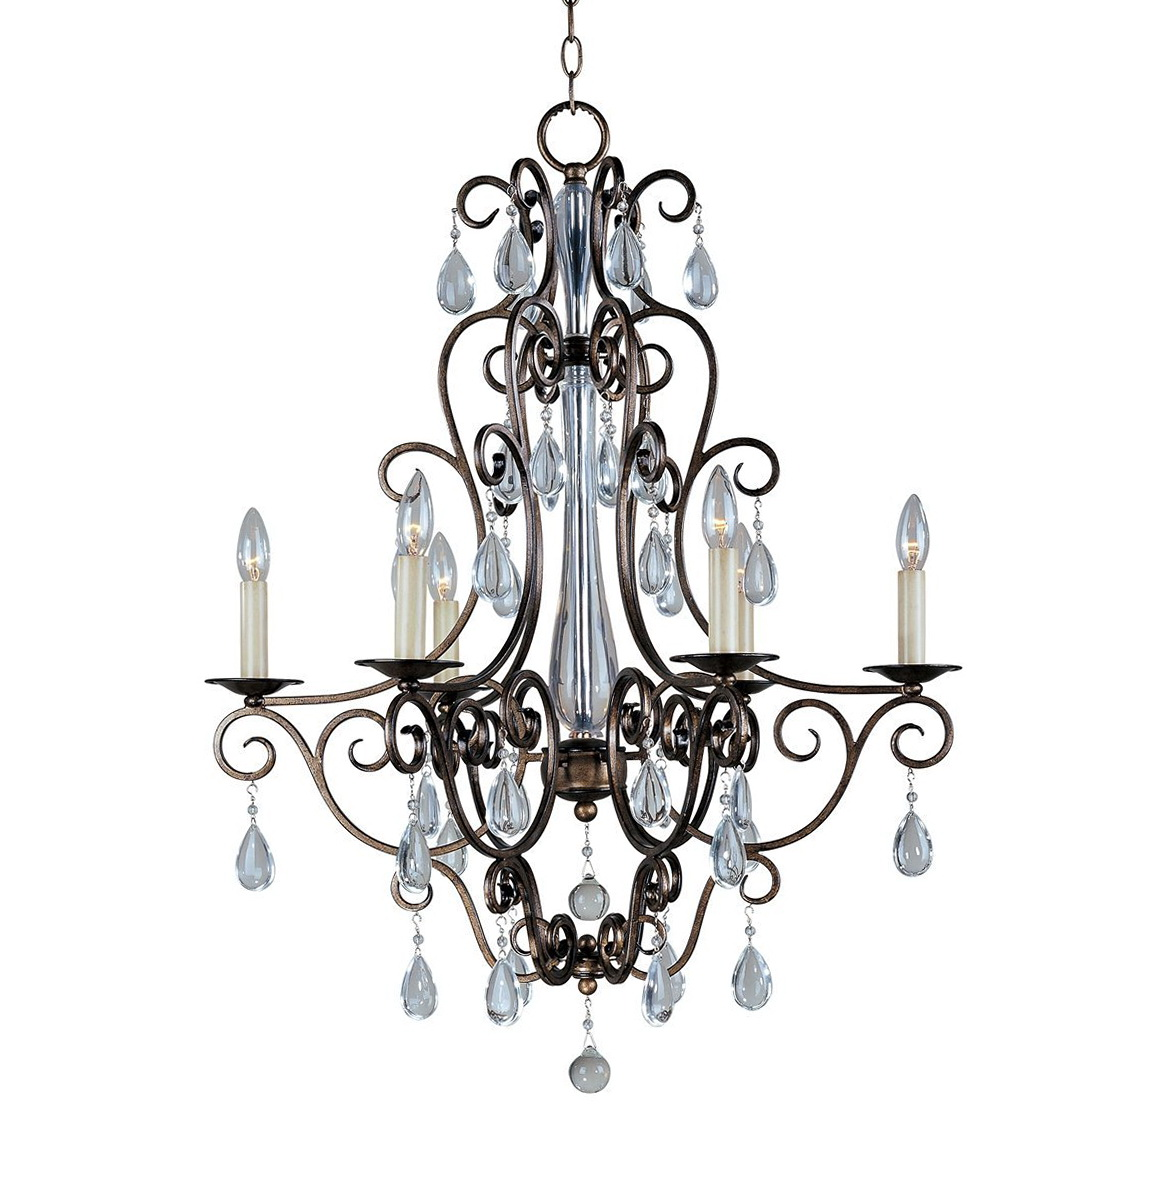 Hampton Bay Maria Theresa Chandelier